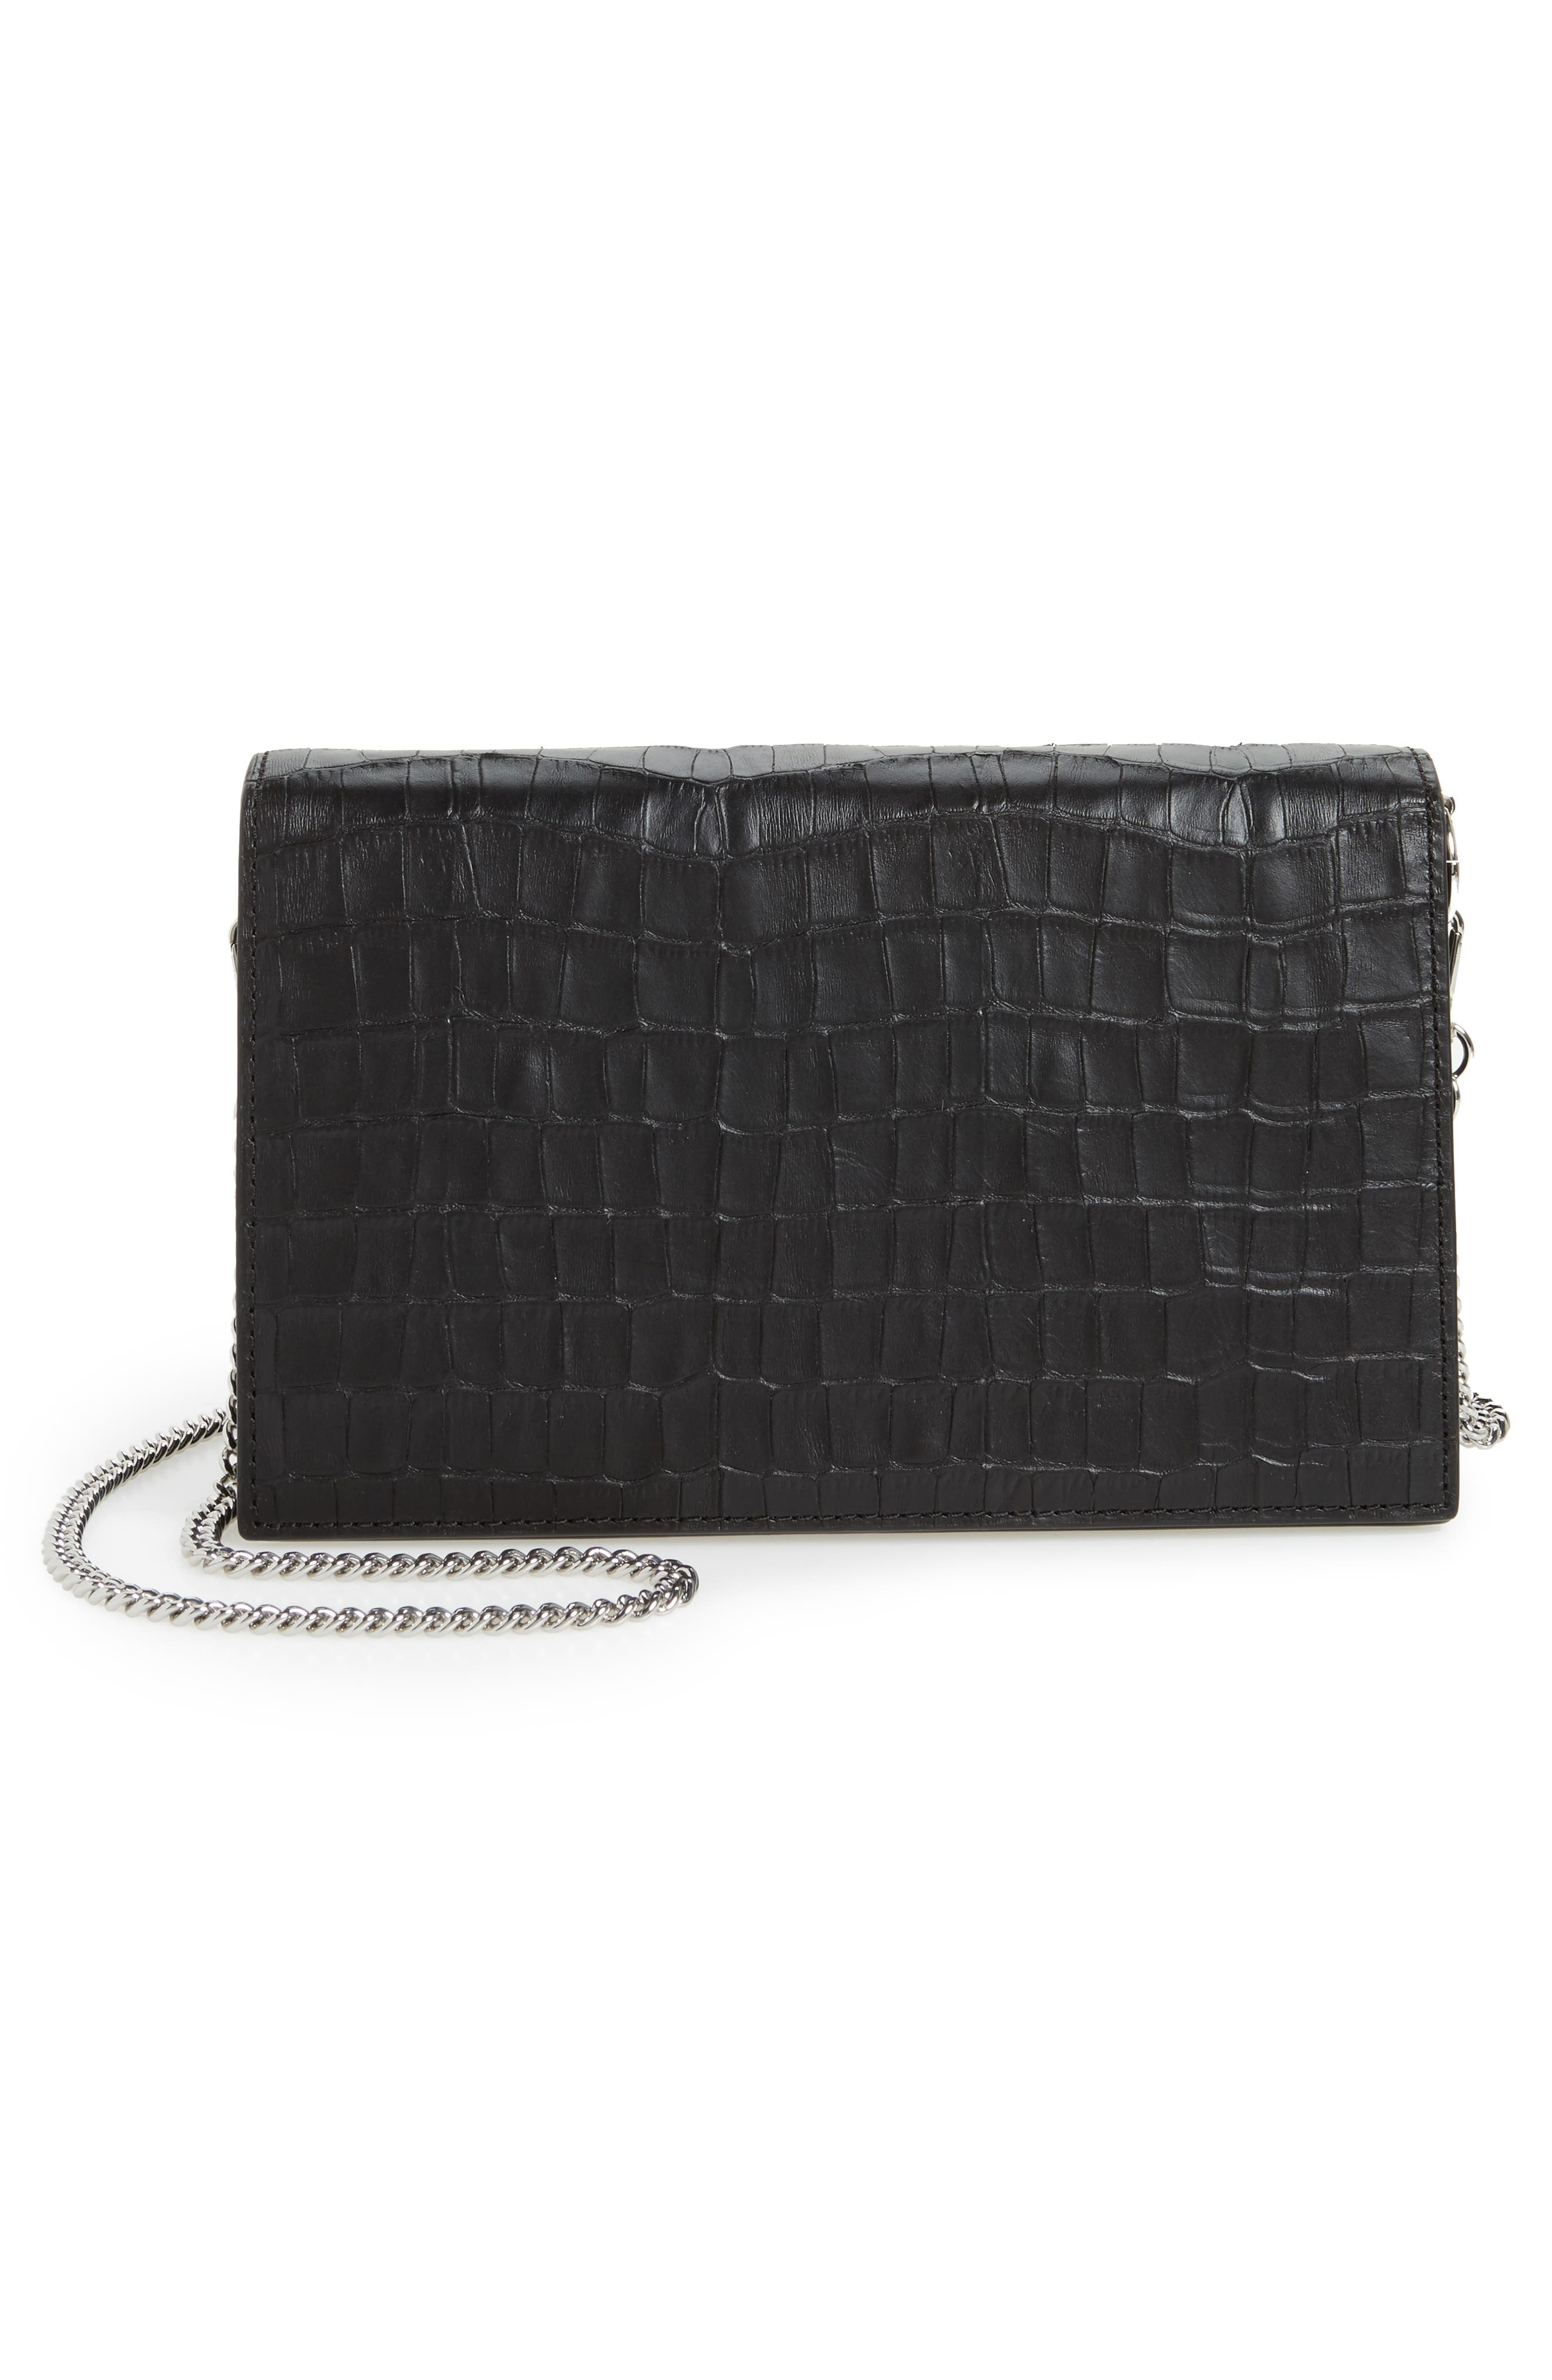 Keel Croc Embossed Leather Box Bag,                             Alternate thumbnail 3, color,                             001